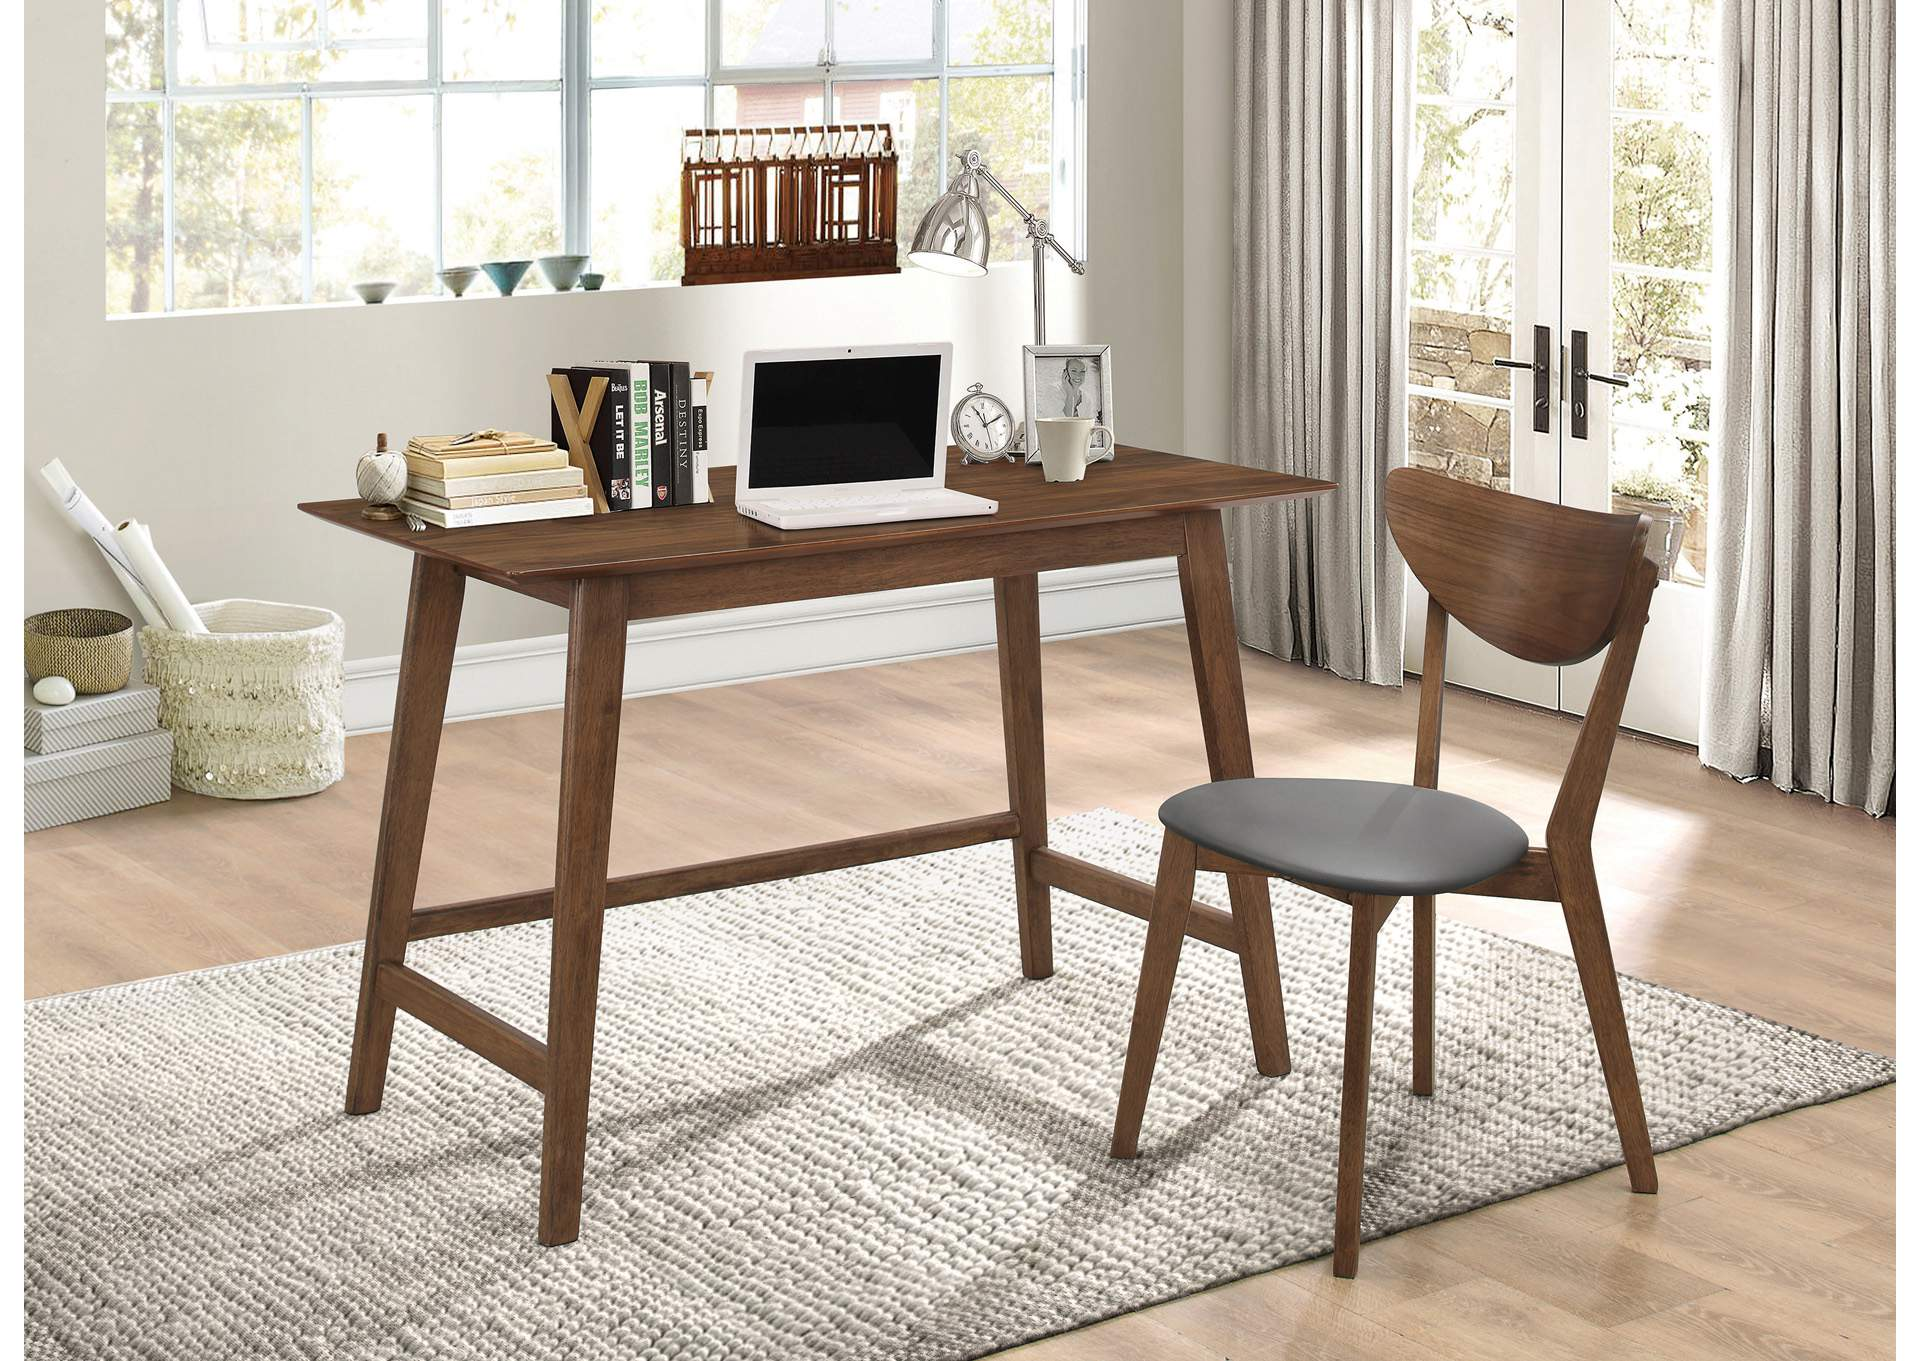 Image of: Swirl Mid Century Modern Walnut Desk And Chair Set Best Buy Furniture And Mattress